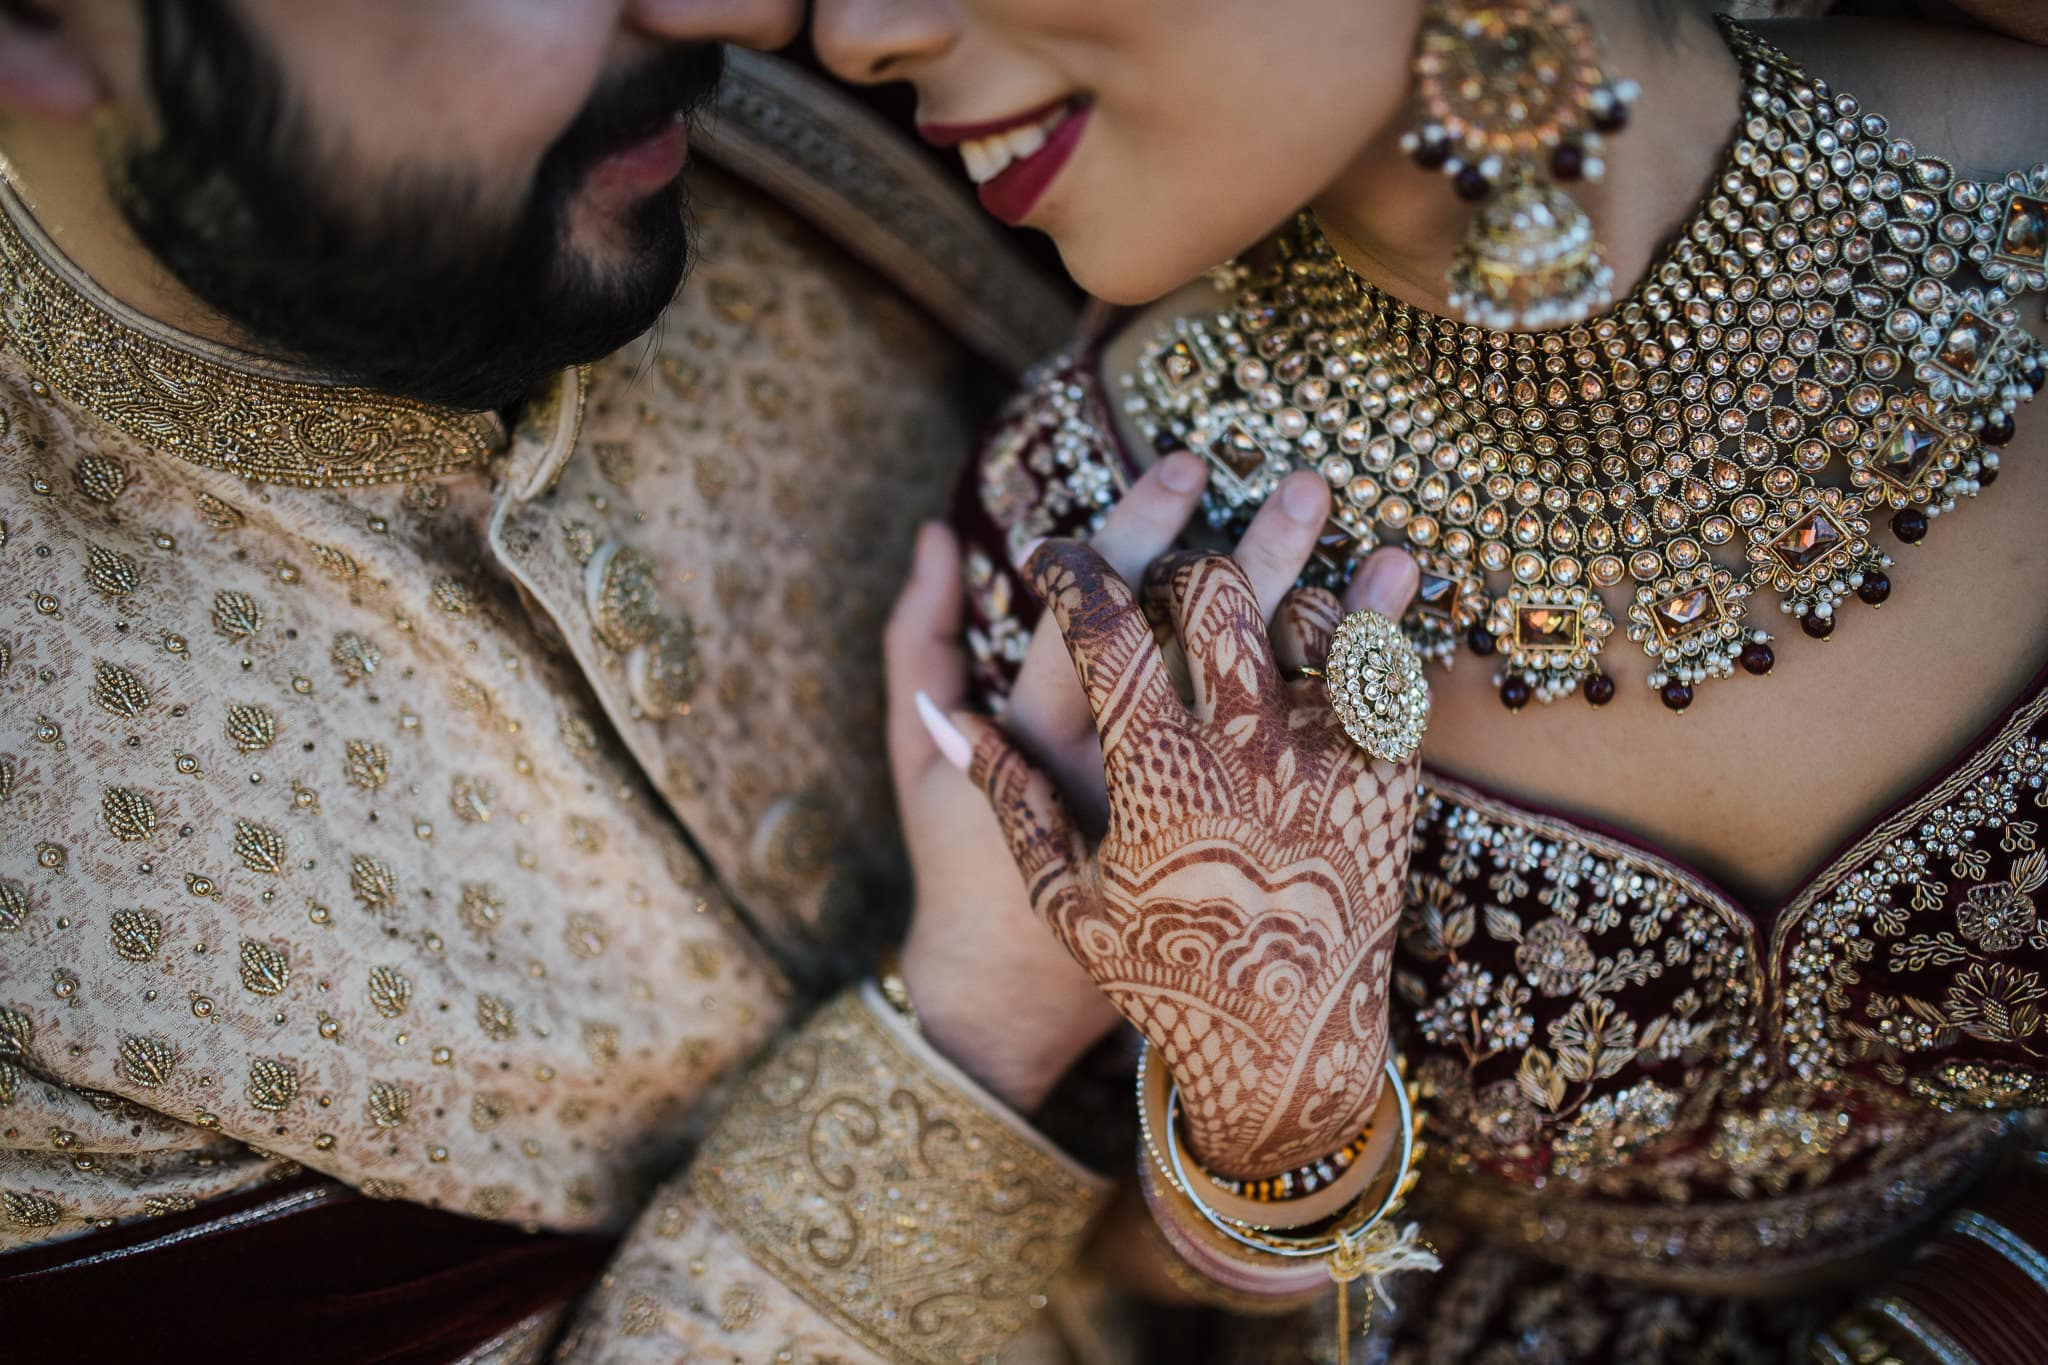 Simran and Anmol's vibrant and modern Sikh wedding celebration in Melbourne, Australia. Wedding Photography was captured by Indian wedding photographer, Bhargav Boppa. Bride, Simran wore a stunning Indian bridal jewellery set and Frontier Raas bridal lehenga.